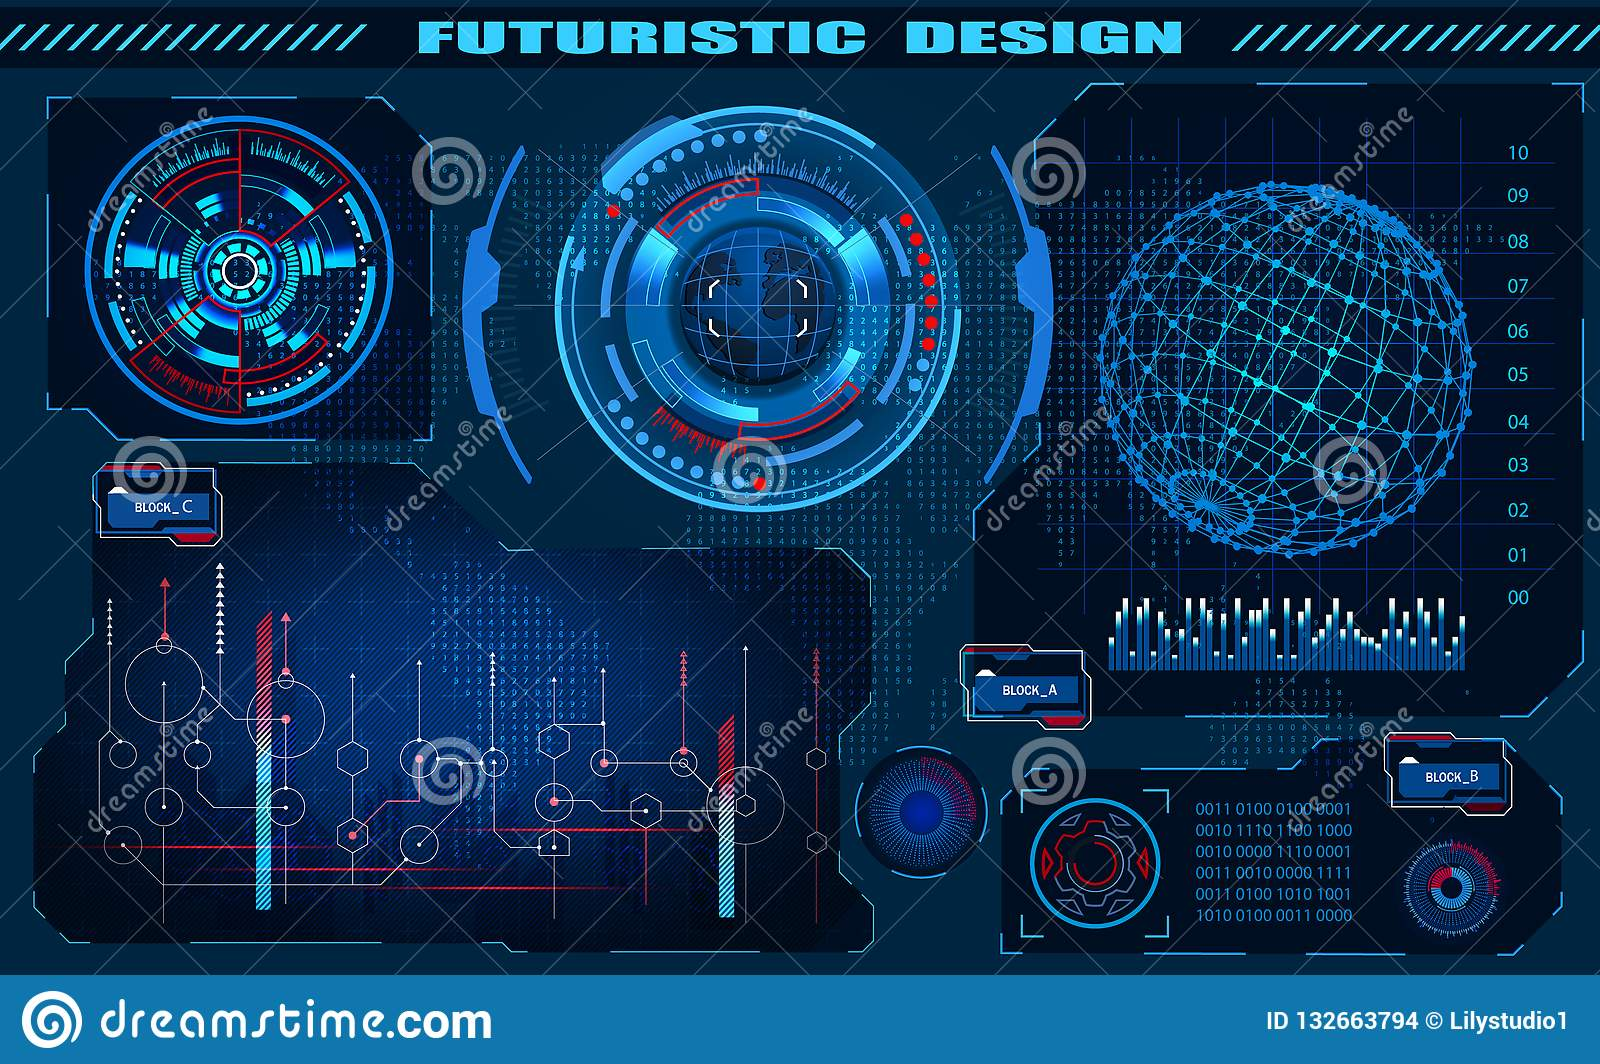 Futuristic graphic interface hud design, infographic elements, hologram of the globe. Theme and science, the theme of